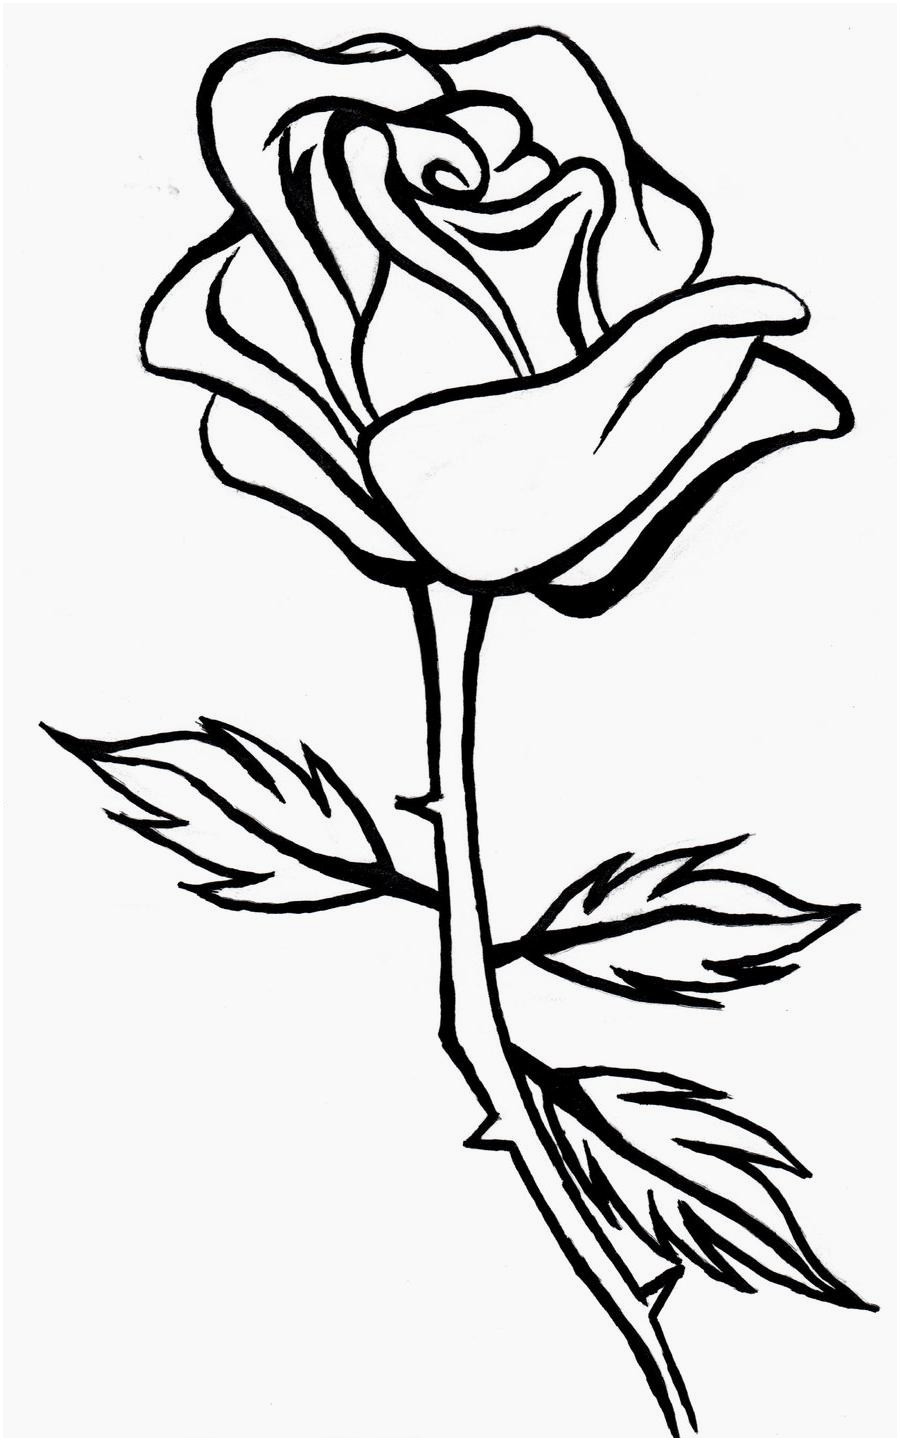 900x1441 Black And White Rose Drawing Black And White Rose Clipart Luxury